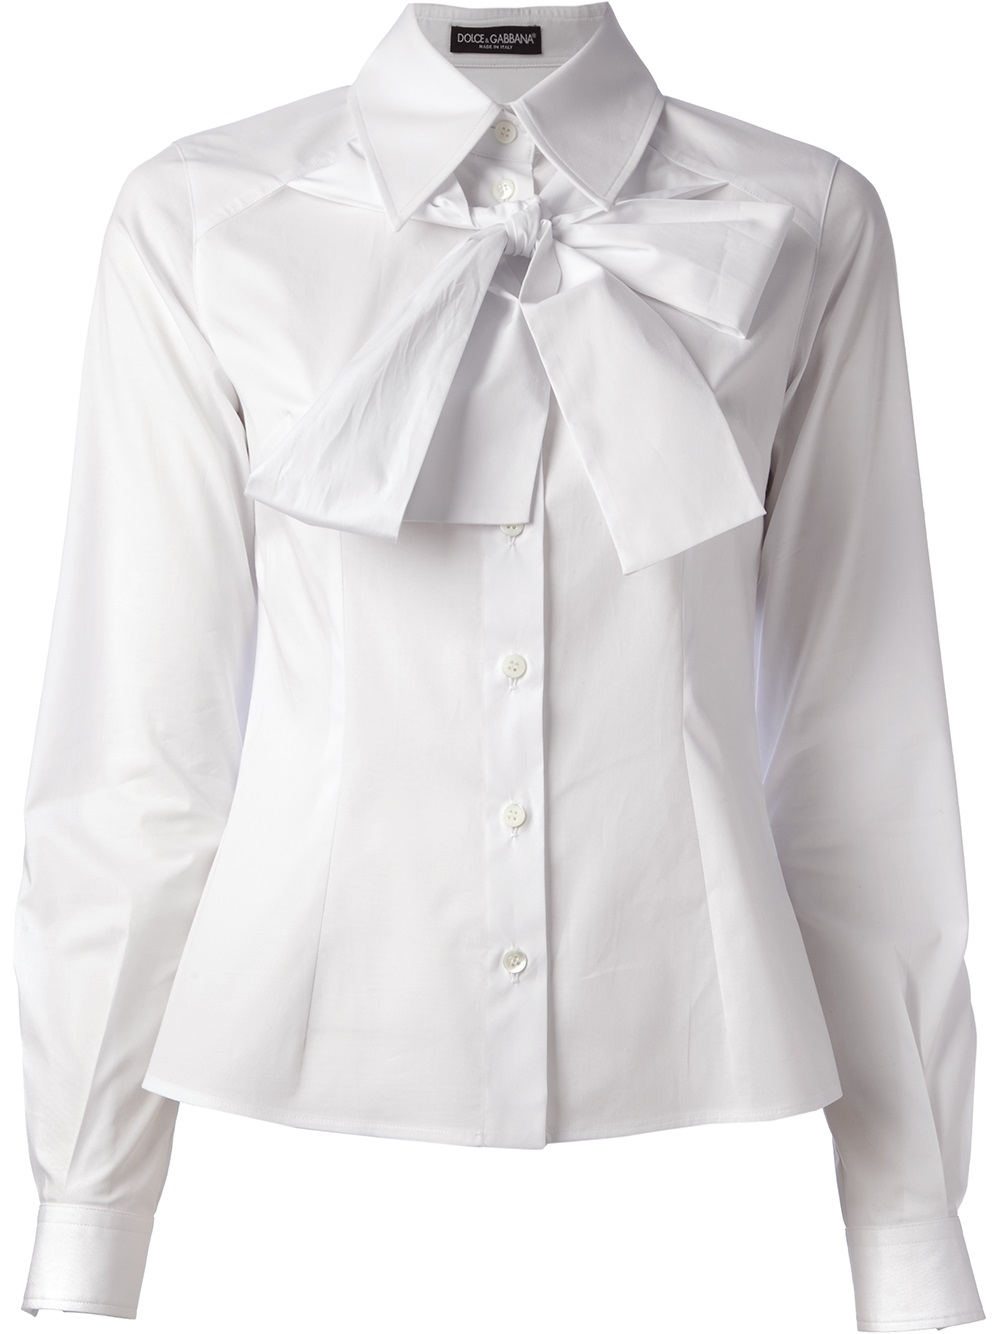 short sleeve shirt with bow tie photo - 1